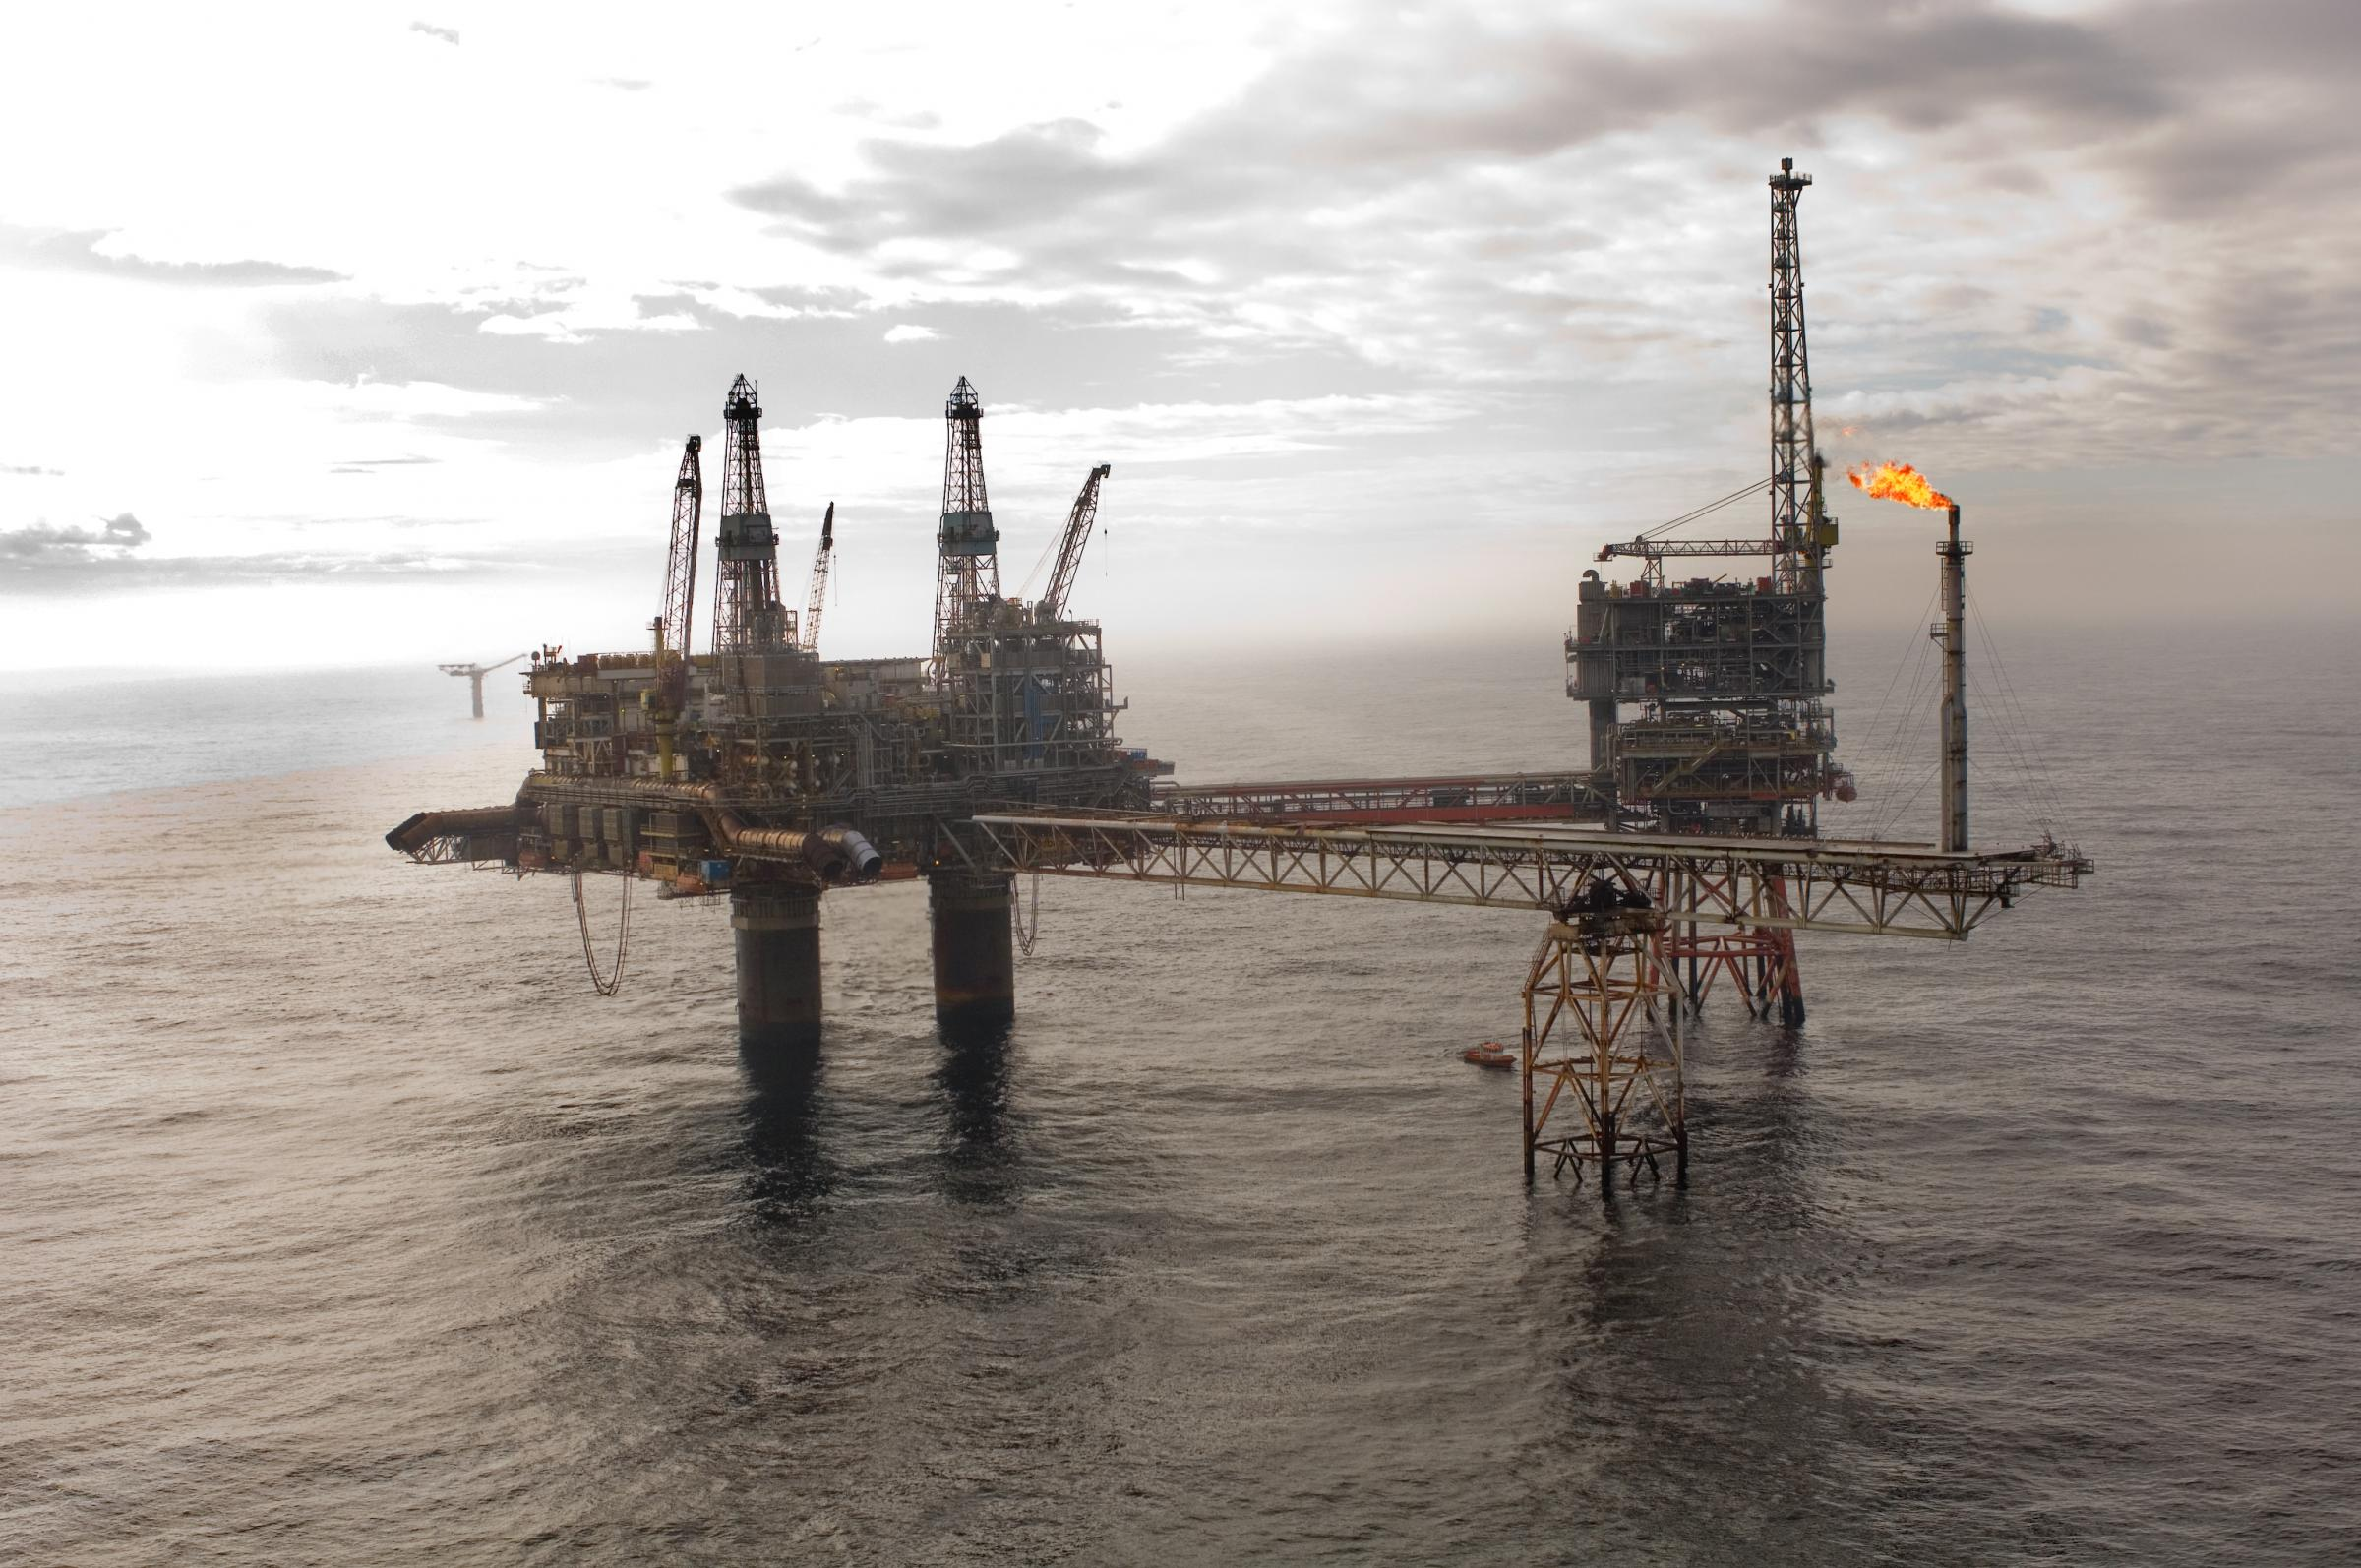 The Beryl Alpha platform in the North Sea Picture: Apache